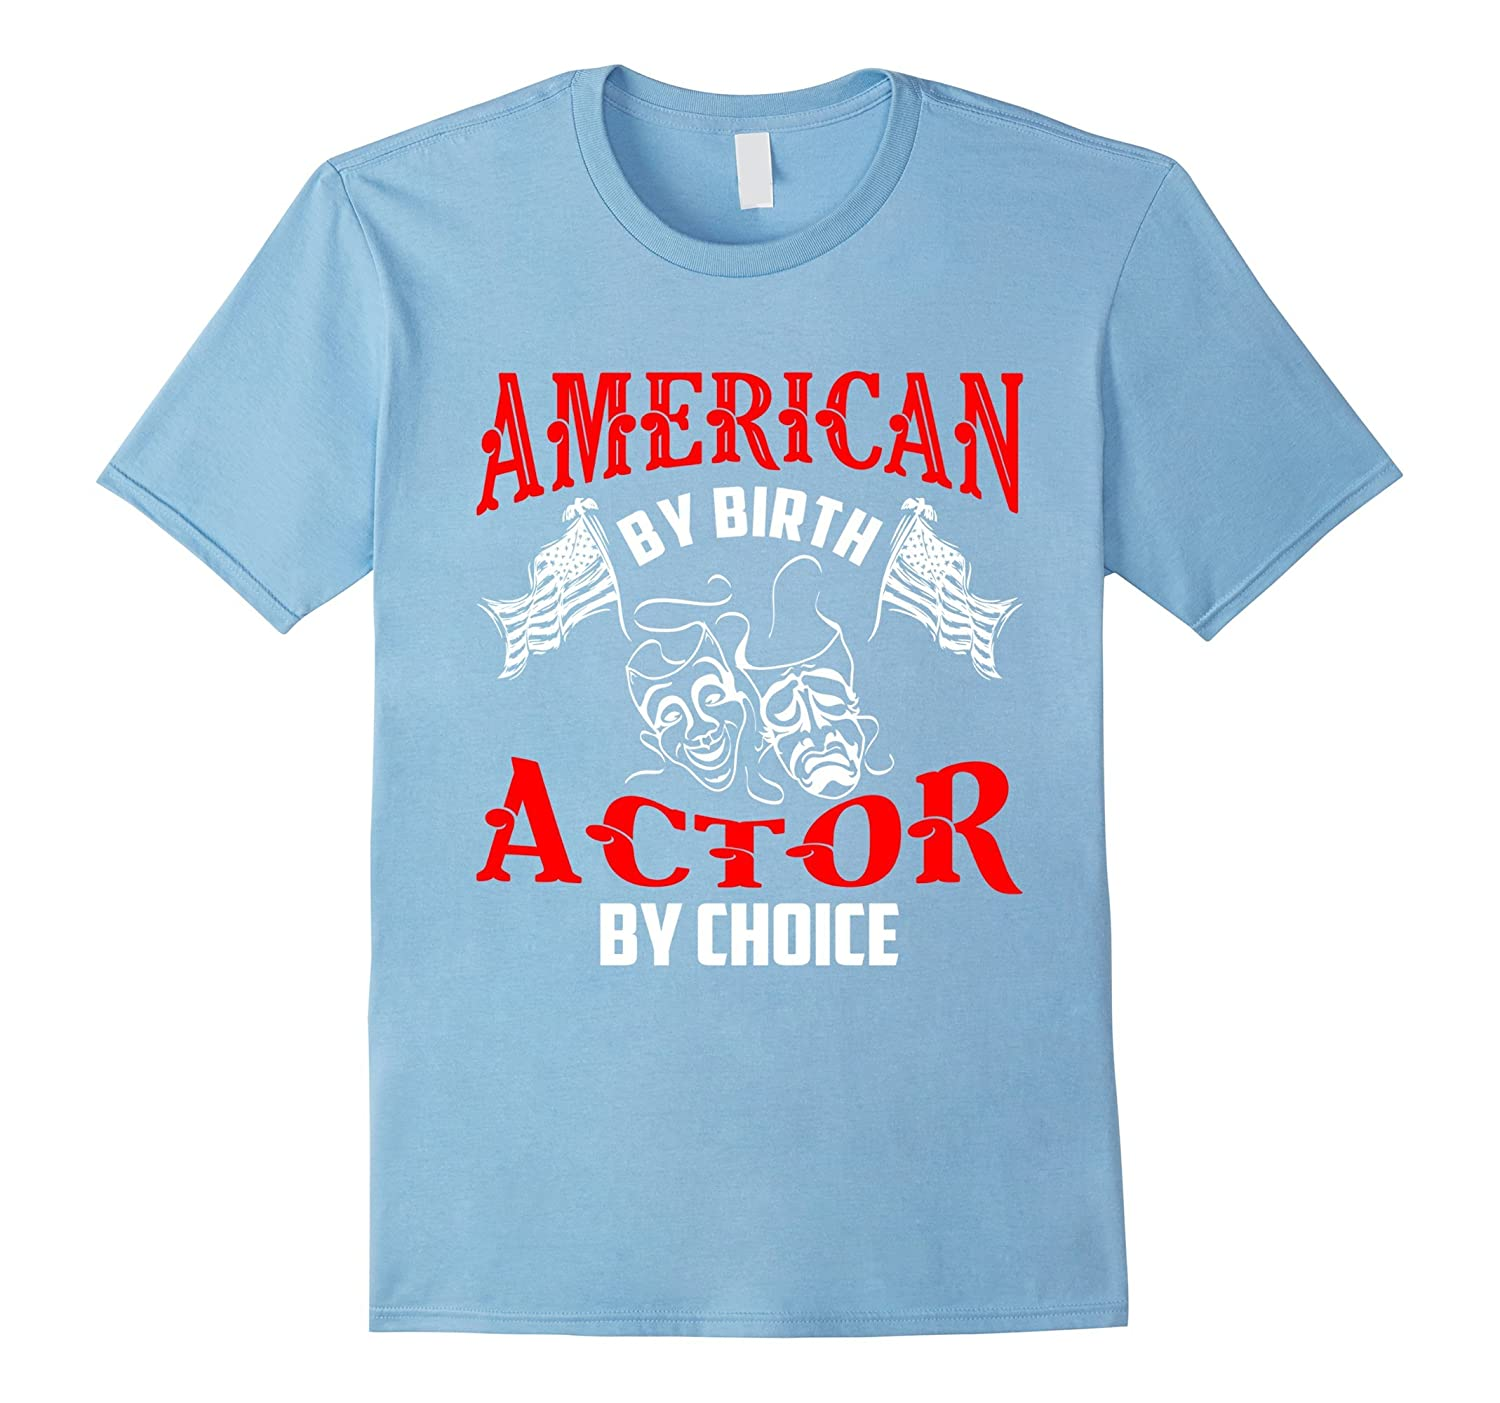 American by birth actor by choice t shirt gift goatstee for American choice